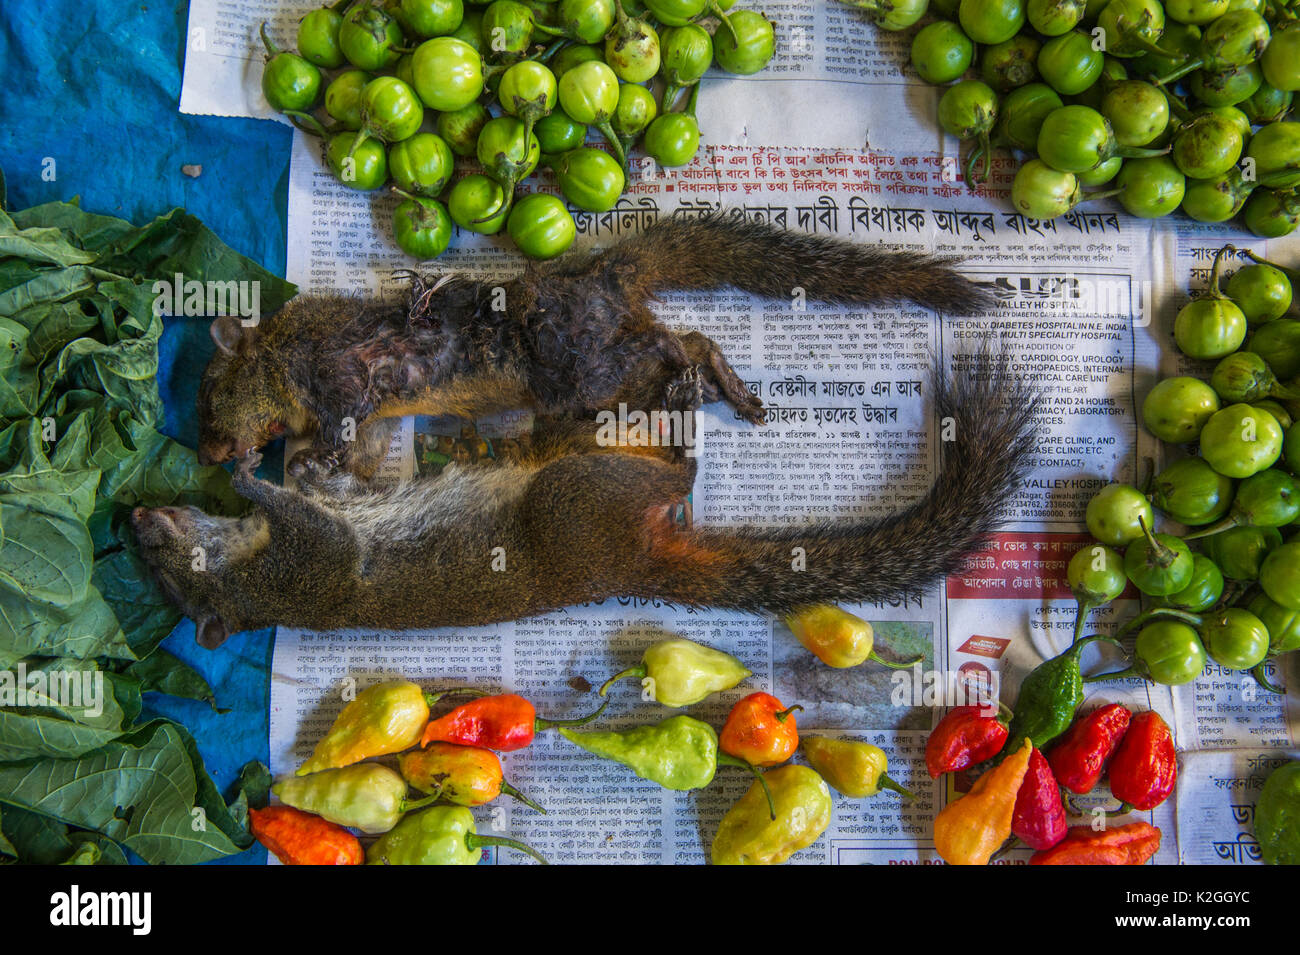 Squirrels for sale in market for food, Apatani Tribe, Ziro Valley, Himalayan Foothills, Arunachal Pradesh, North East India, November 2014. - Stock Image